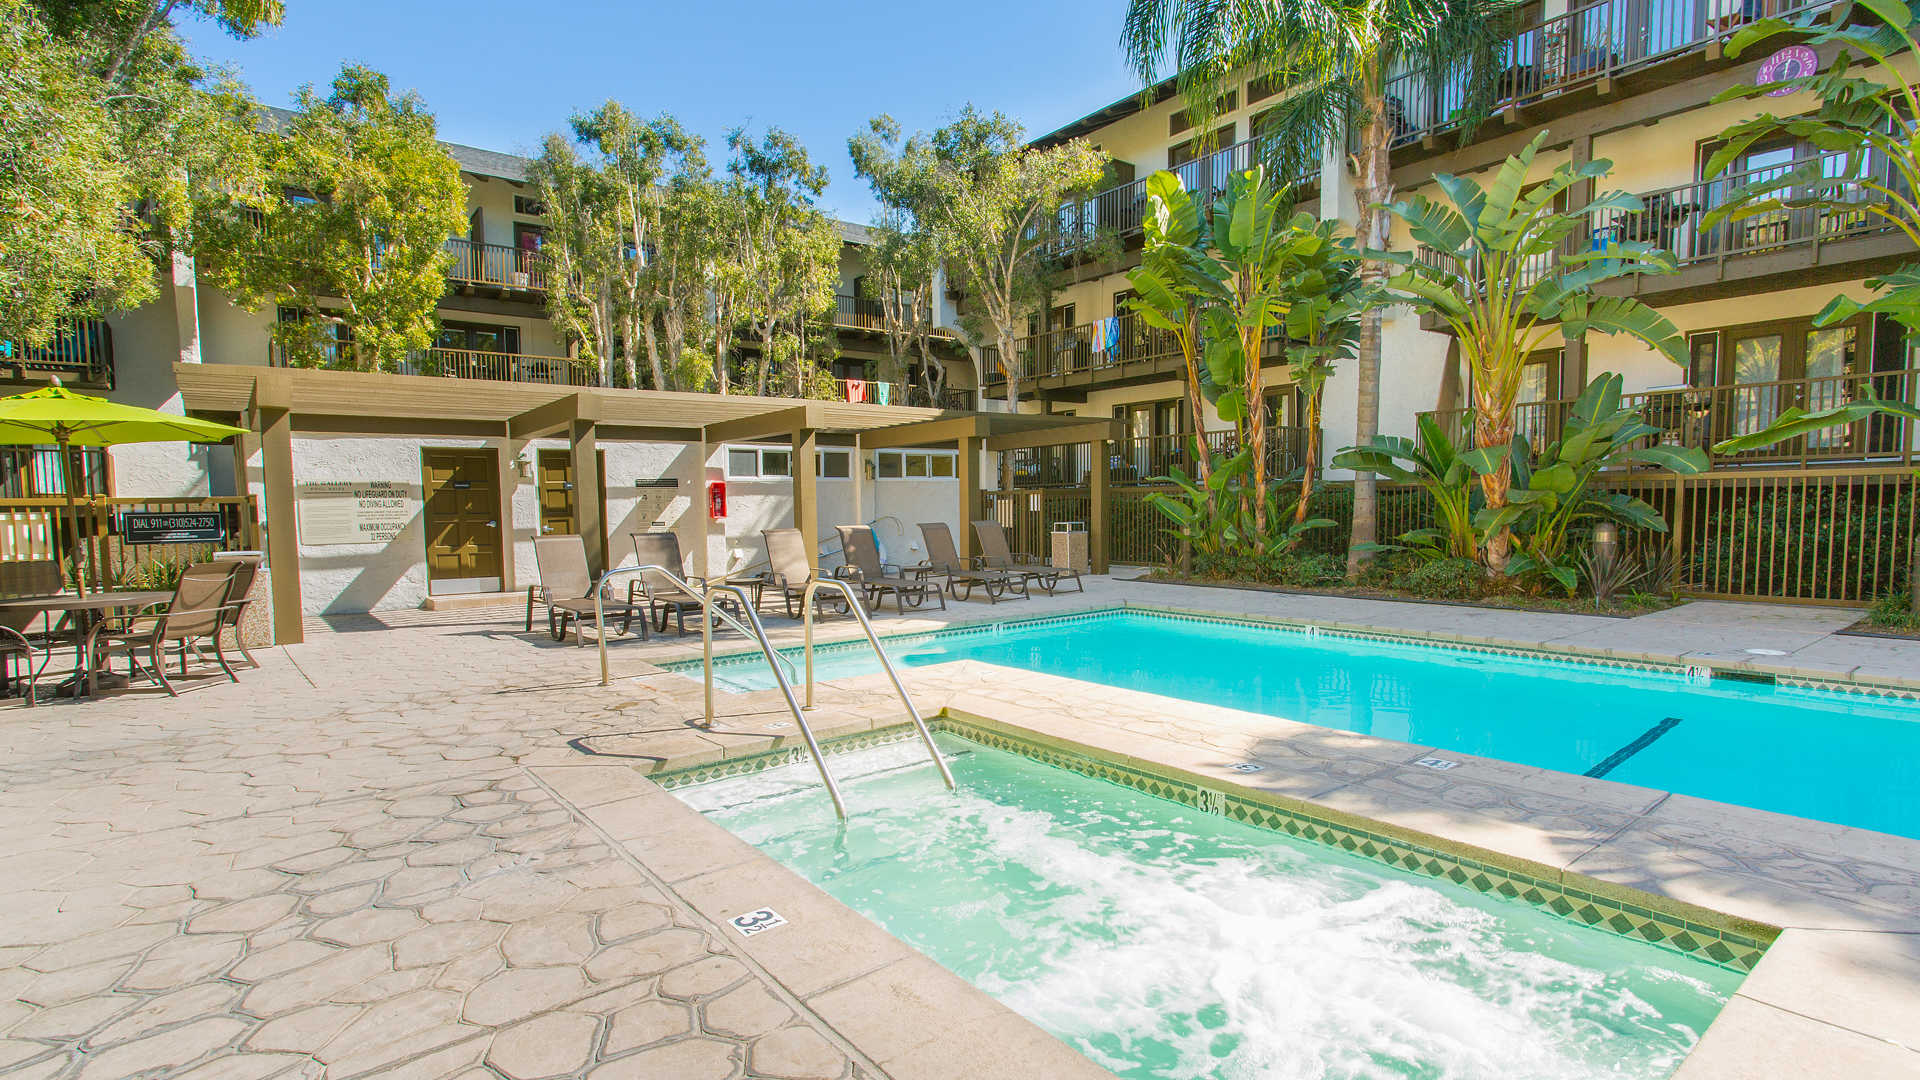 The Gallery Apartments Hermosa Beach 414 Second St Equityapartments